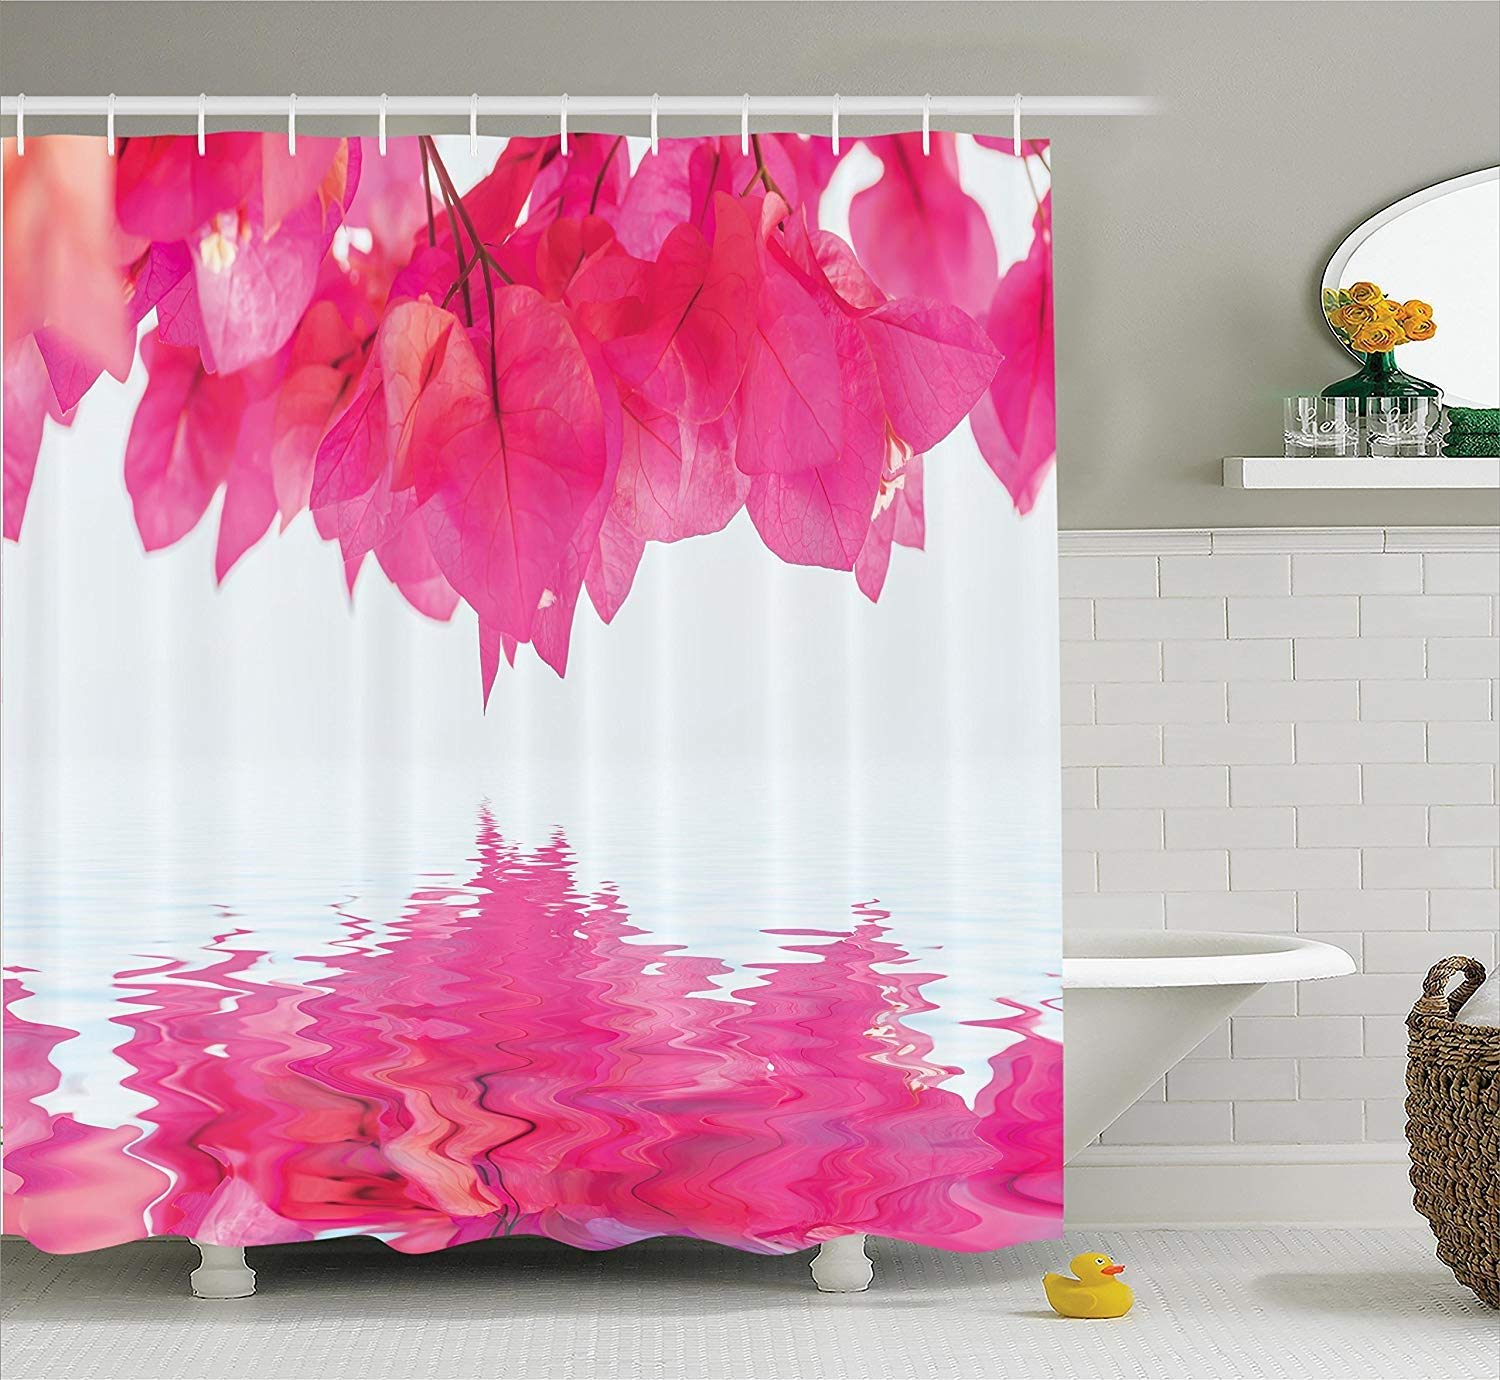 Shower Curtain Apartment Decor Set Bougainvillea Flowers Petals Projecting To The Water Exotic Spiritual Feminine Artprint, Bathroom Accessories, Hot Pink 60X72 Inch